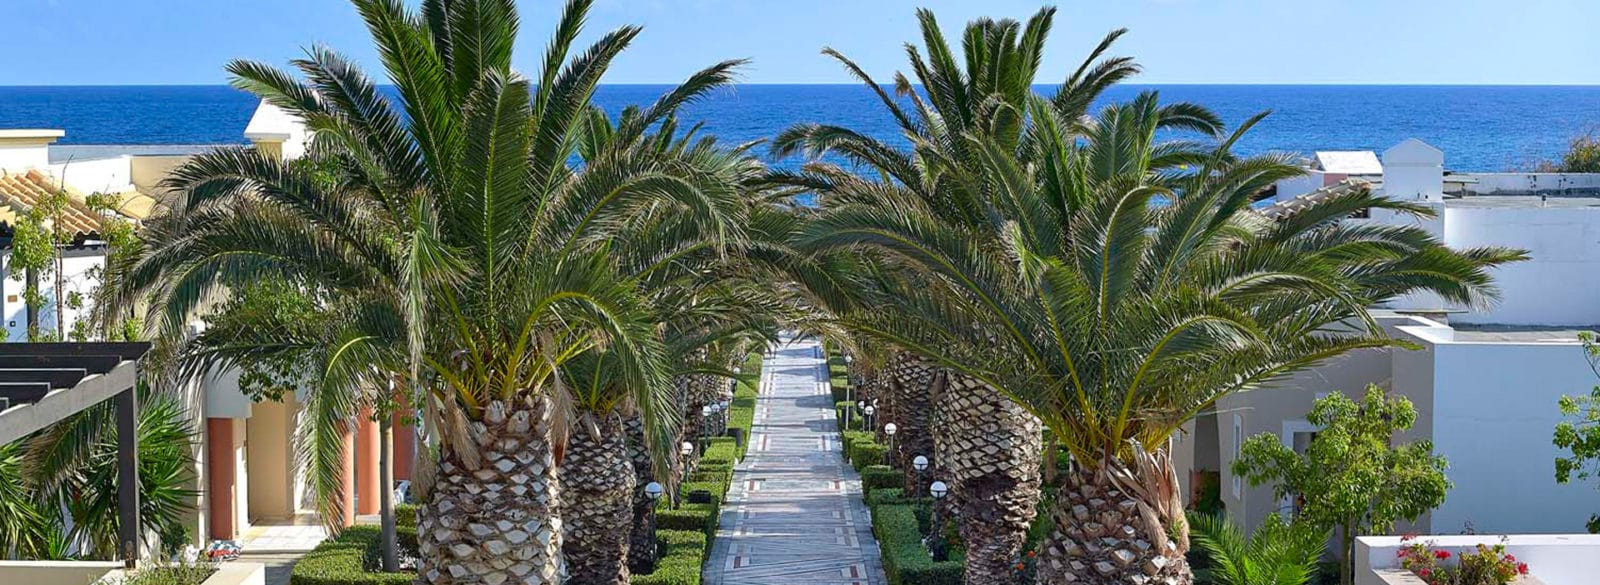 Exterior Knossos Royal 5-star Knossos Royal Beach Resort in Crete | Book Hotel rooms online